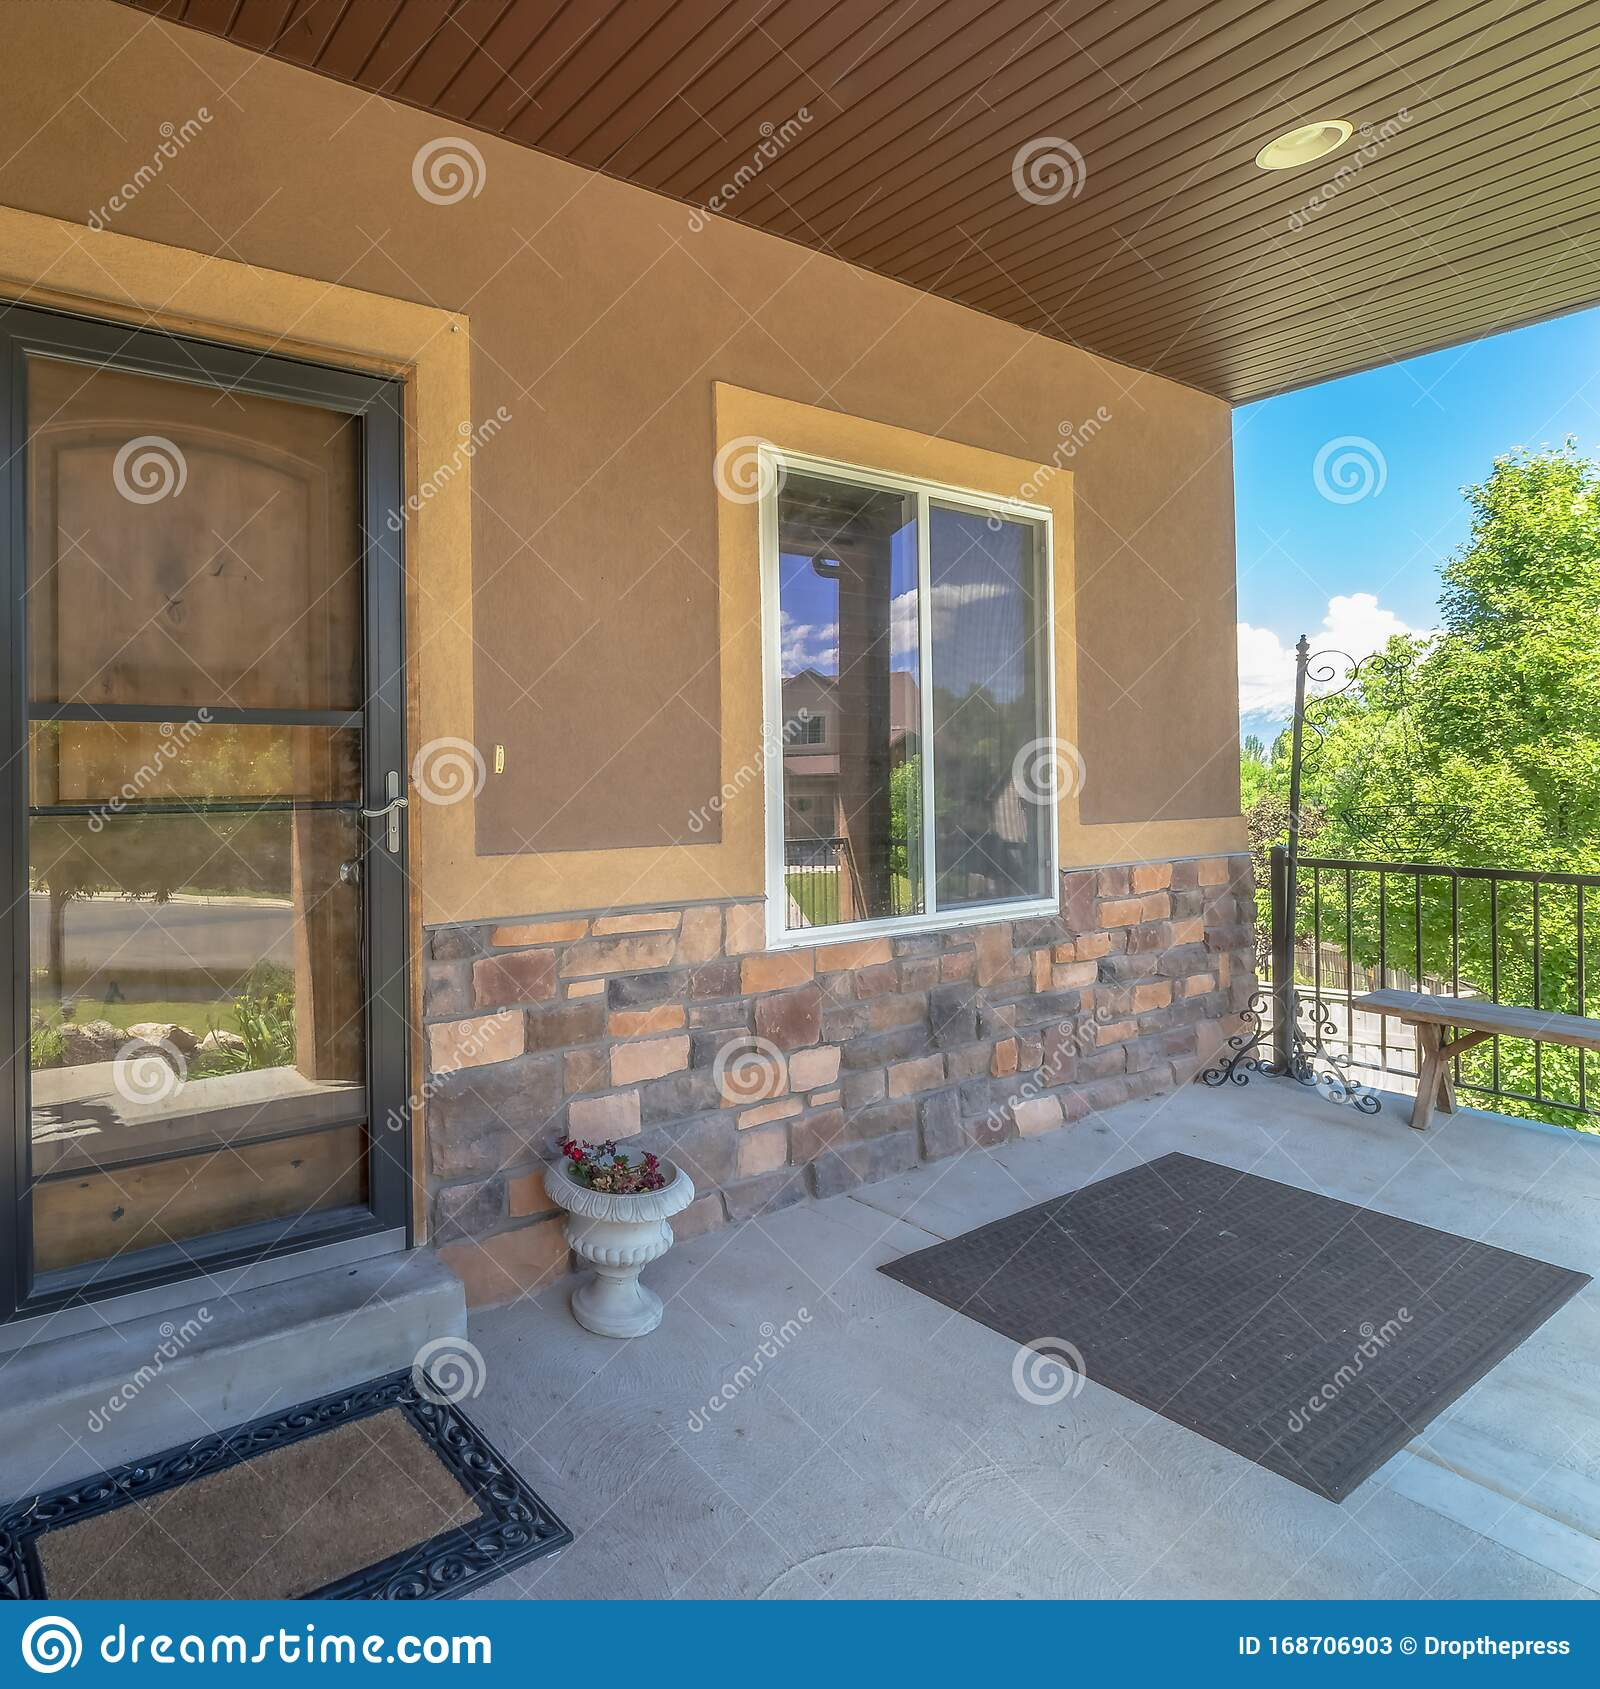 Square Home Exterior View With Porch And Glass Door In Front Of The Brown Front Door Stock Image Image Of Brown Window 168706903